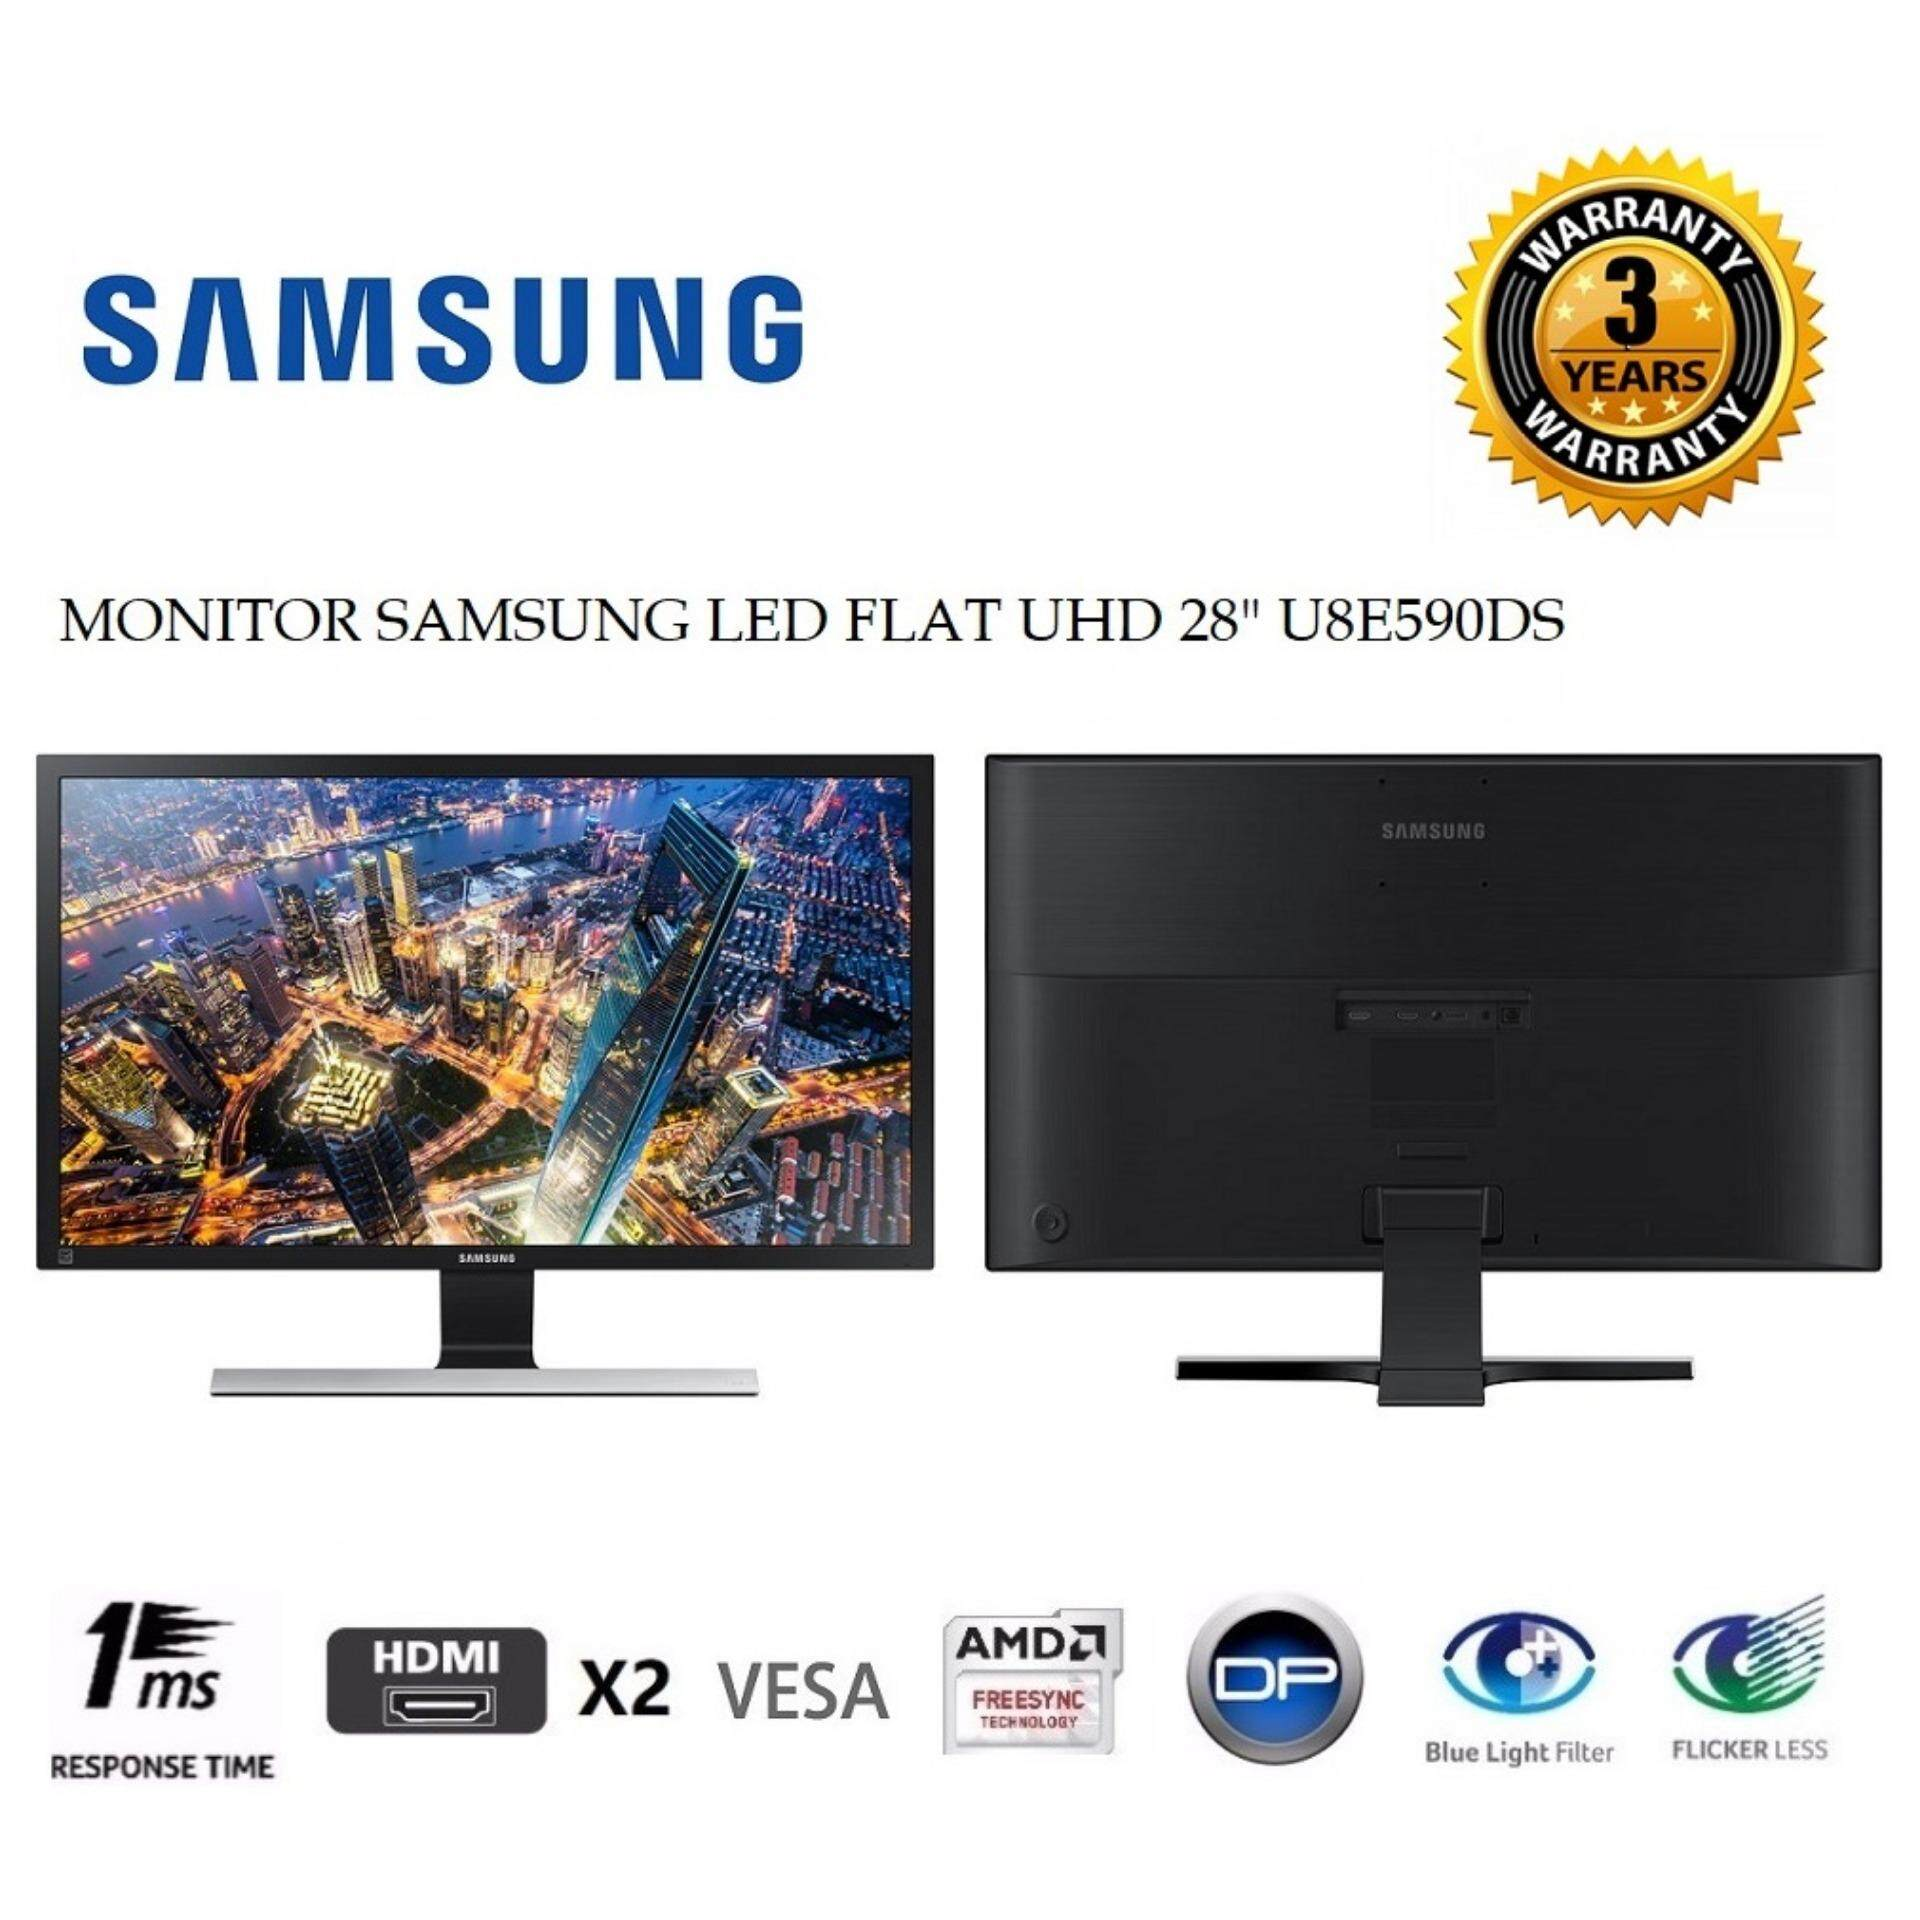 GENUINE SAMSUNG LED FLAT UHD 28 U28E590DS LCD MONITOR (1MS/HDMI*2/DP/VESA) BLACK Malaysia